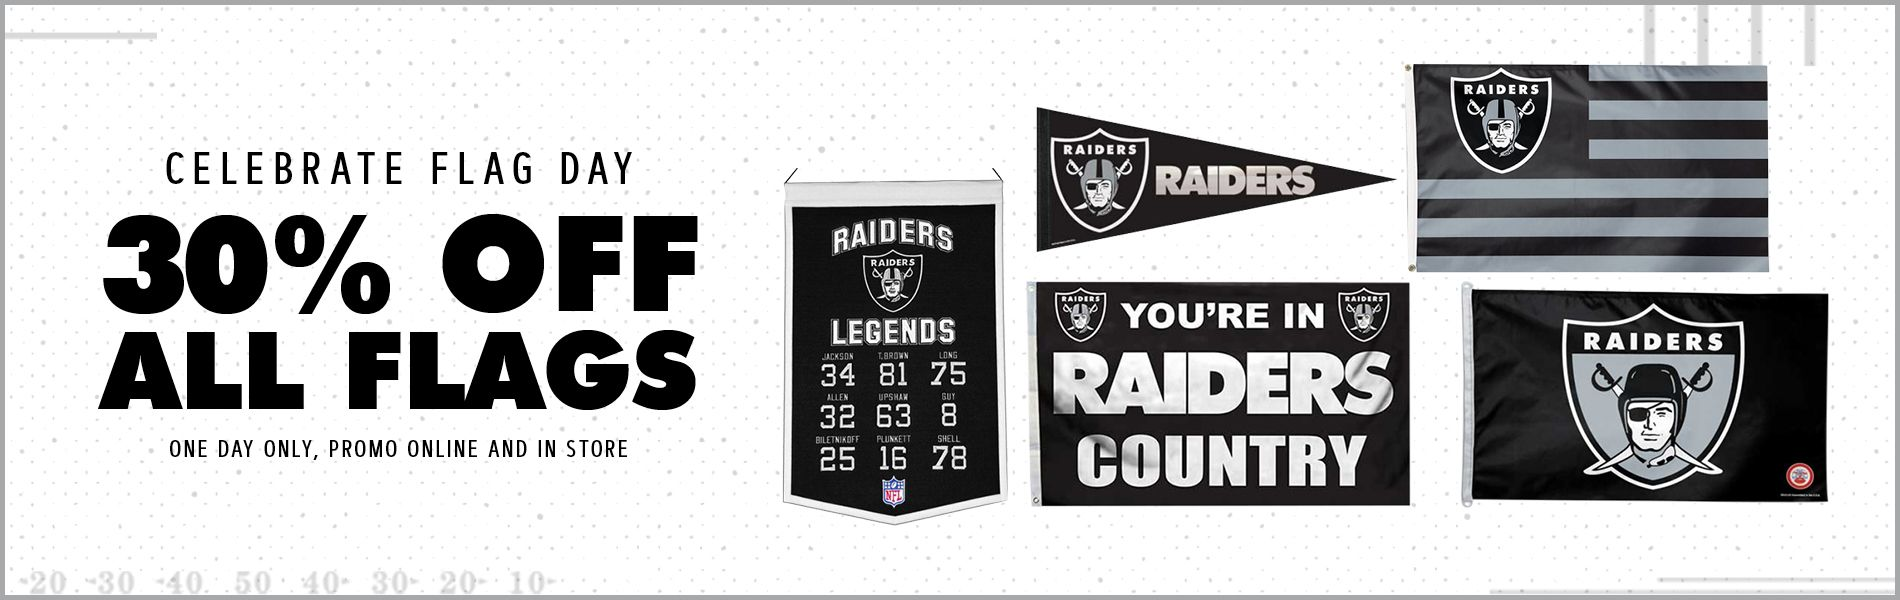 b37b4b391be The Raider Image - The Official Store for Oakland Raiders Merchandise